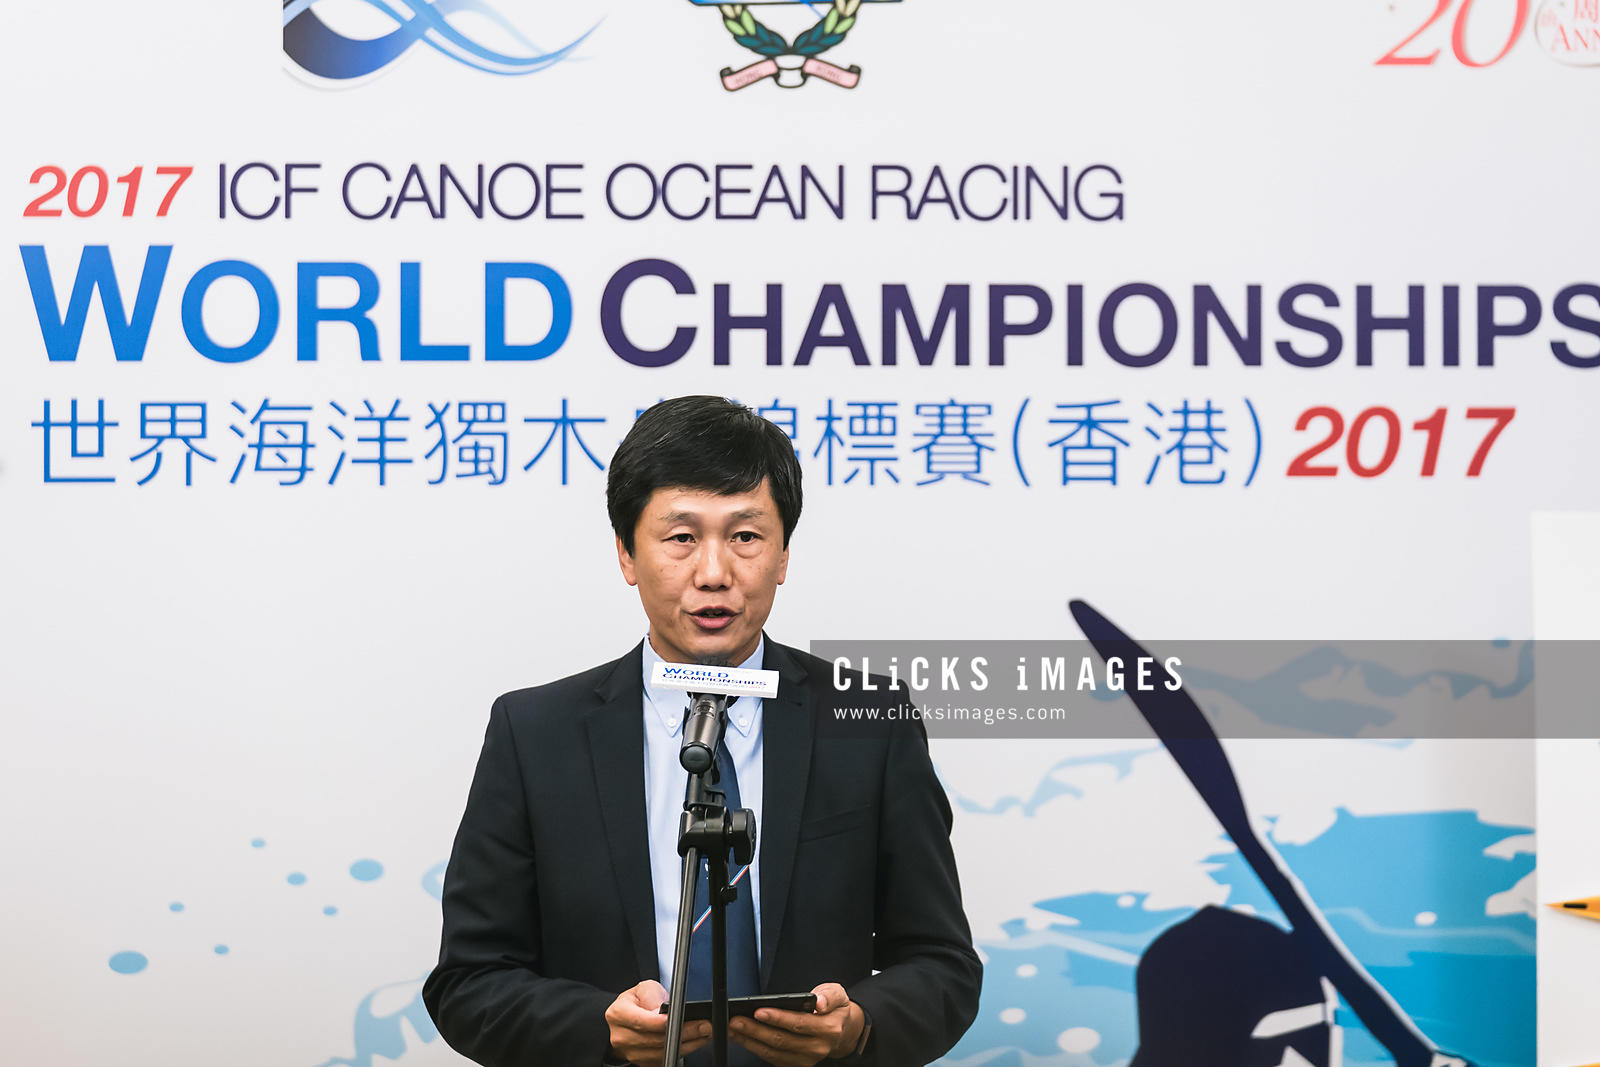 世界海洋獨木舟錦標賽 ICF Canoe Ocean Racing World Championships 2017 Press conference at L' Hotel Causeway Bay Harbour View on November...